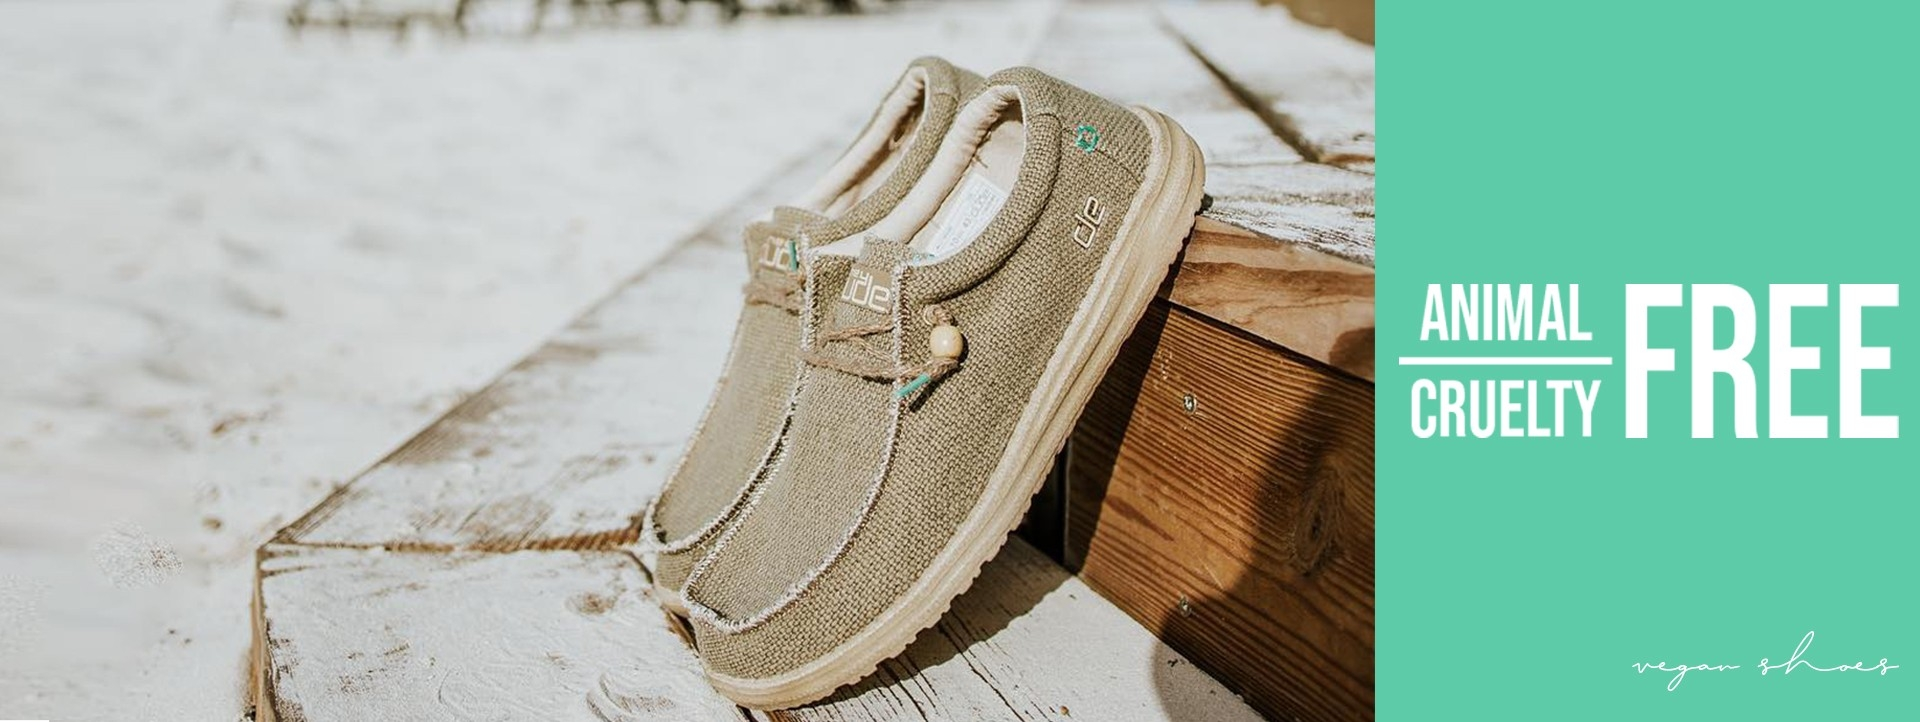 HeyDude - VeganShoes.it